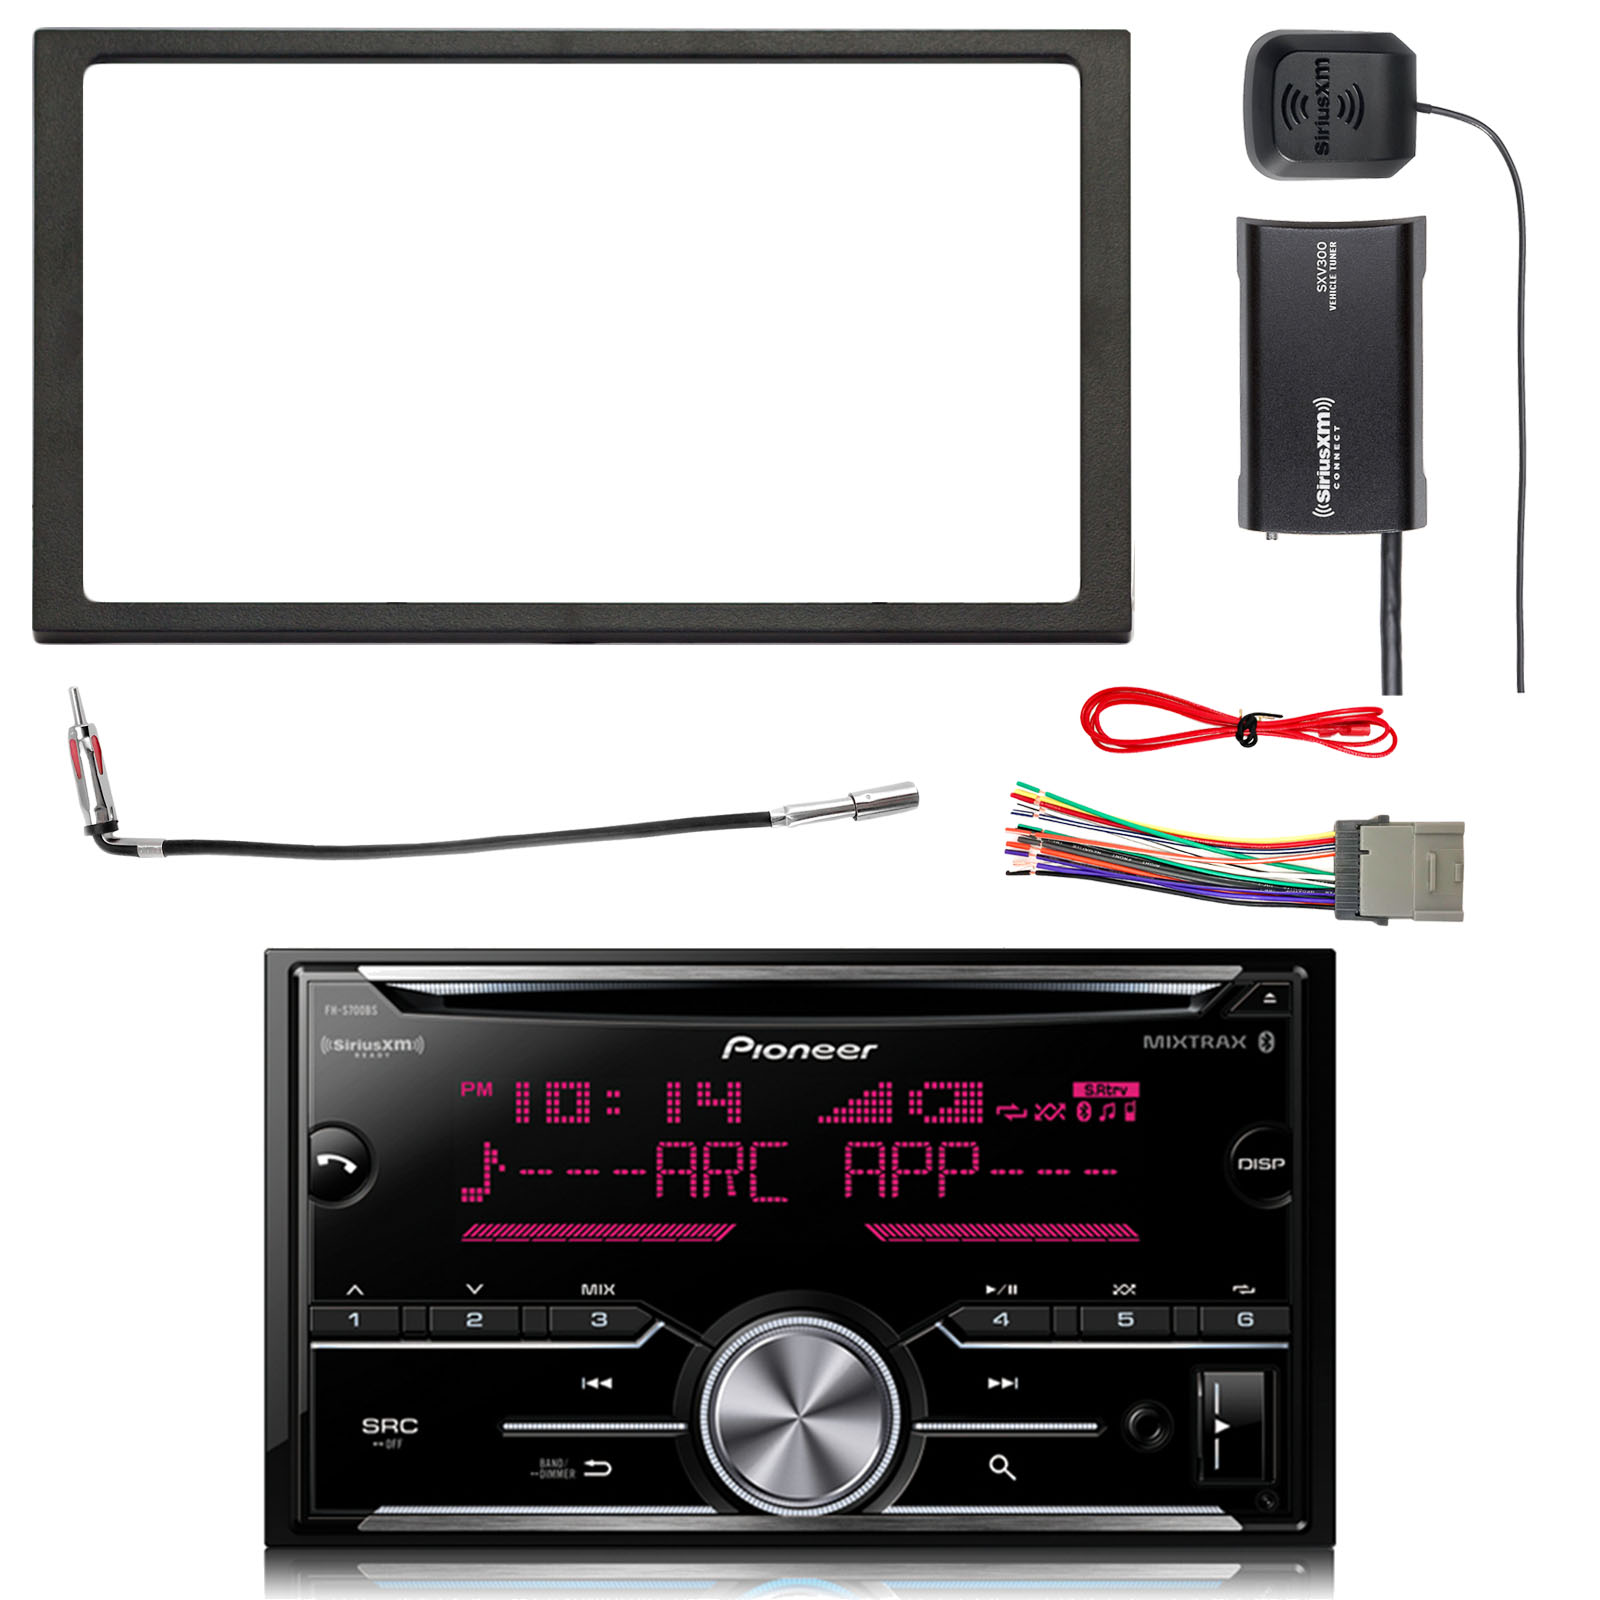 hight resolution of pioneer double din cd bluetooth siriusxm ready receiver siriusxm satellite radio tuner kit double din install dash kit stereo wiring harness